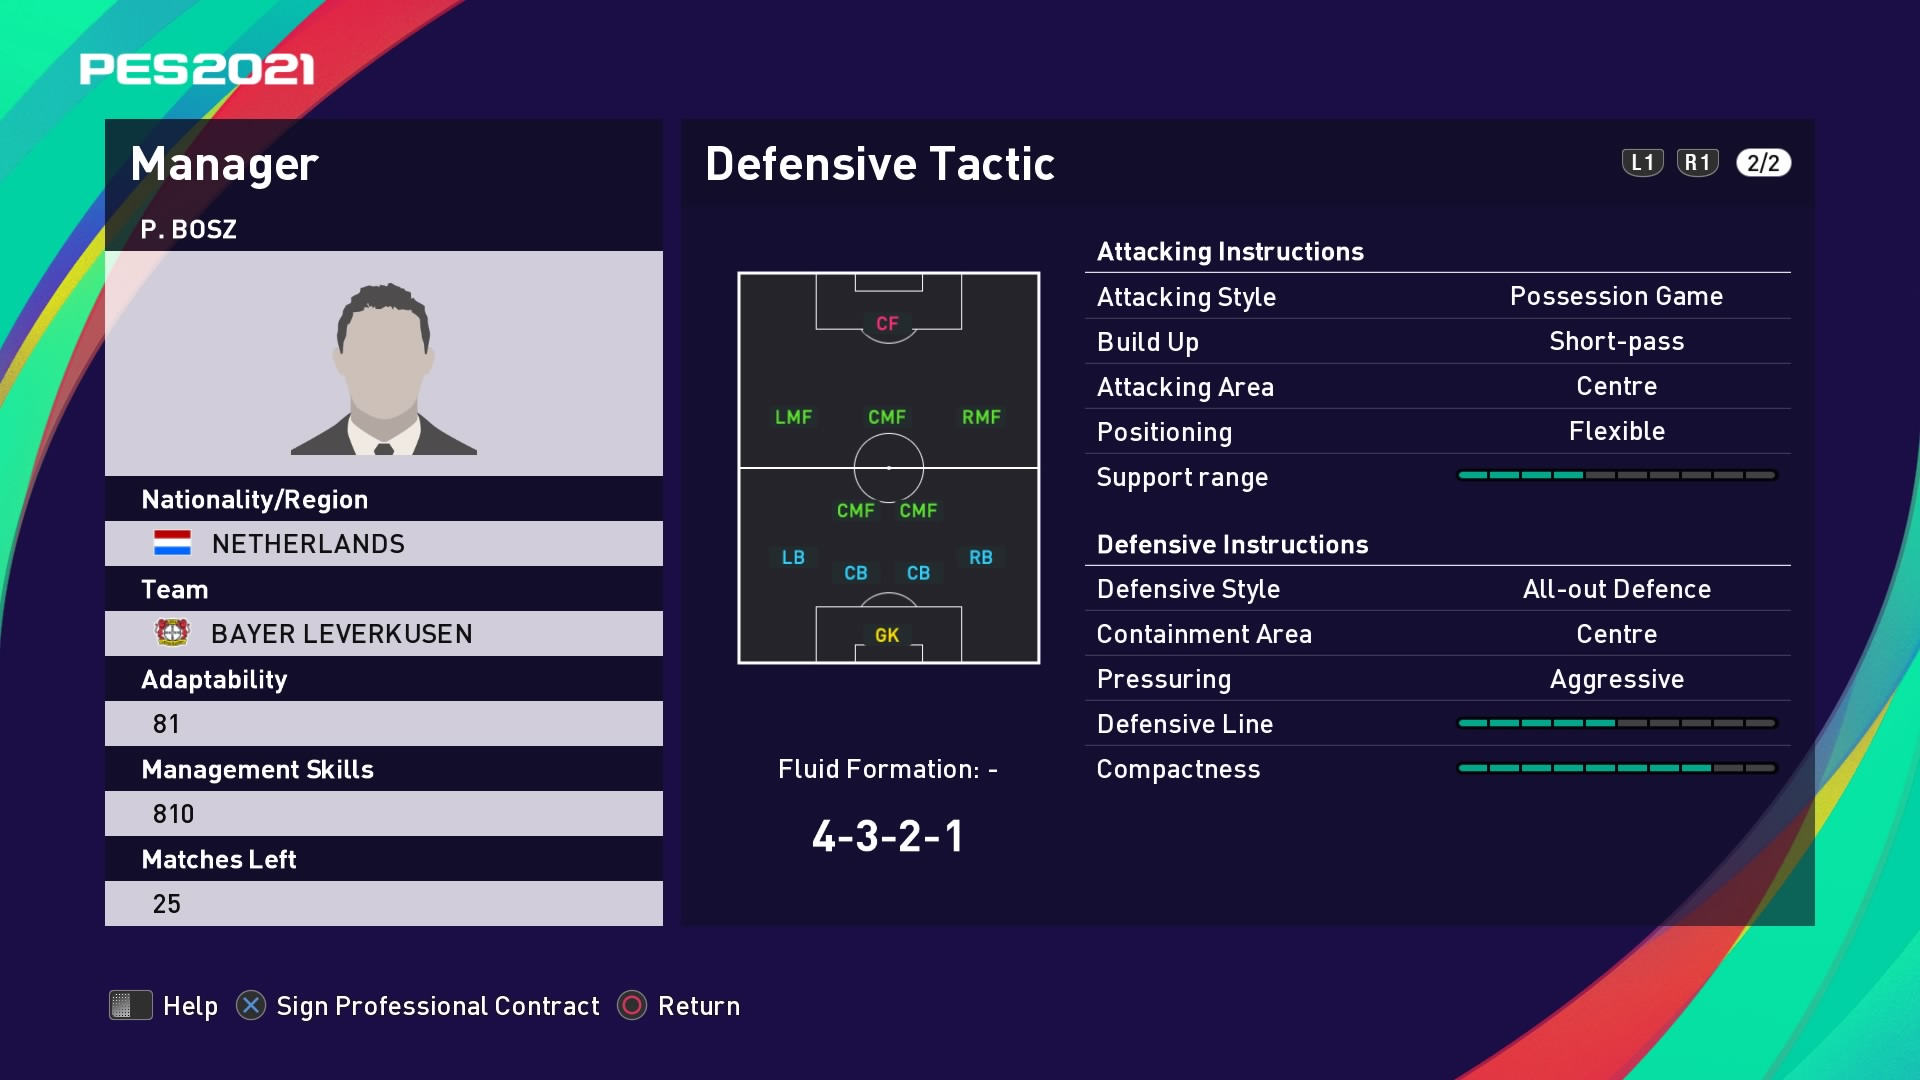 P. Bosz (Peter Bosz) Defensive Tactic in PES 2021 myClub